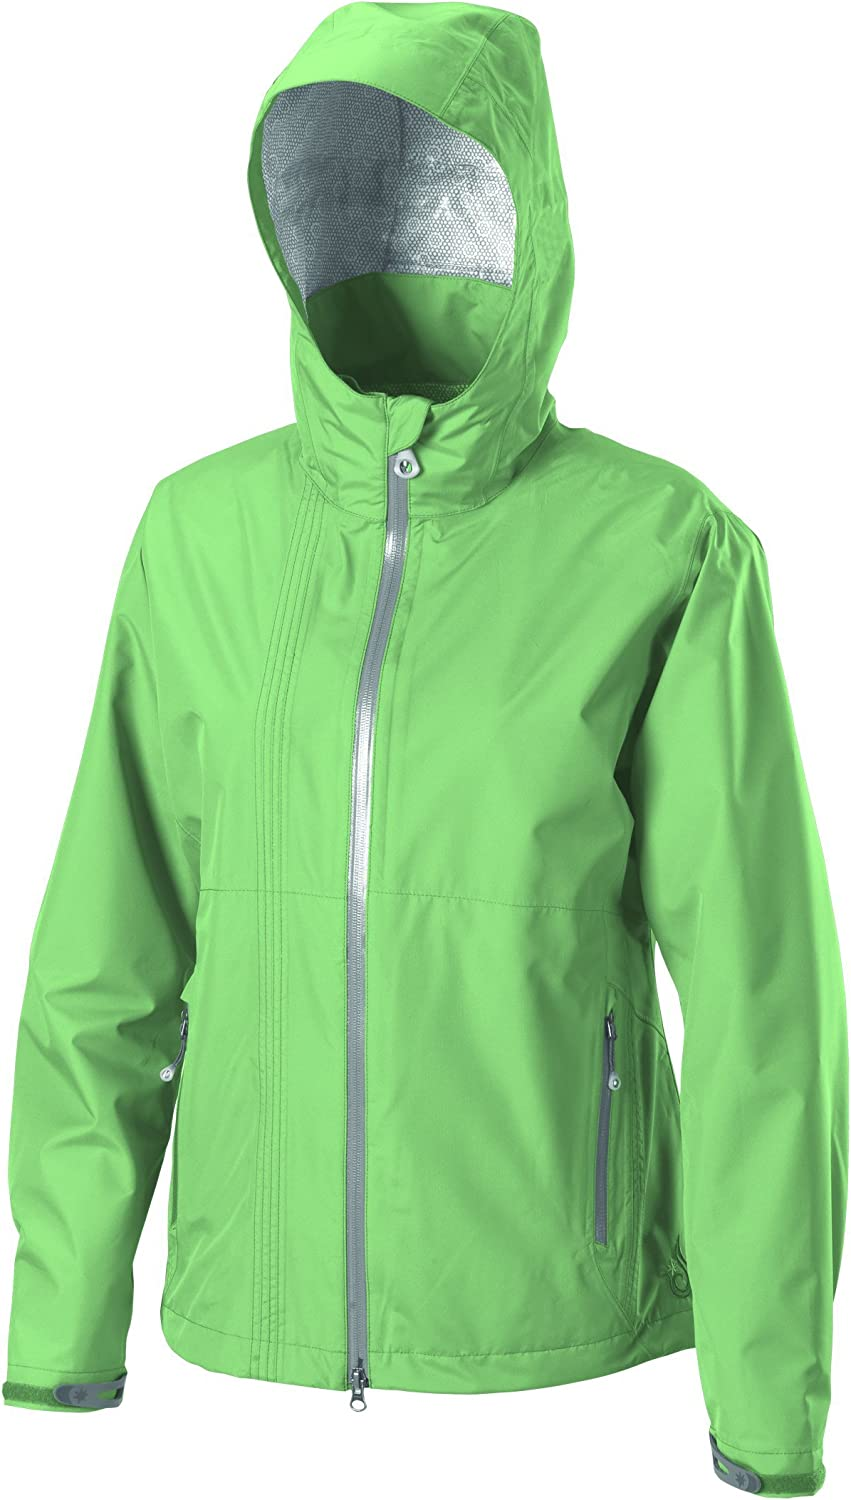 Isis Women's New sales Max 86% OFF Jacket Tempest